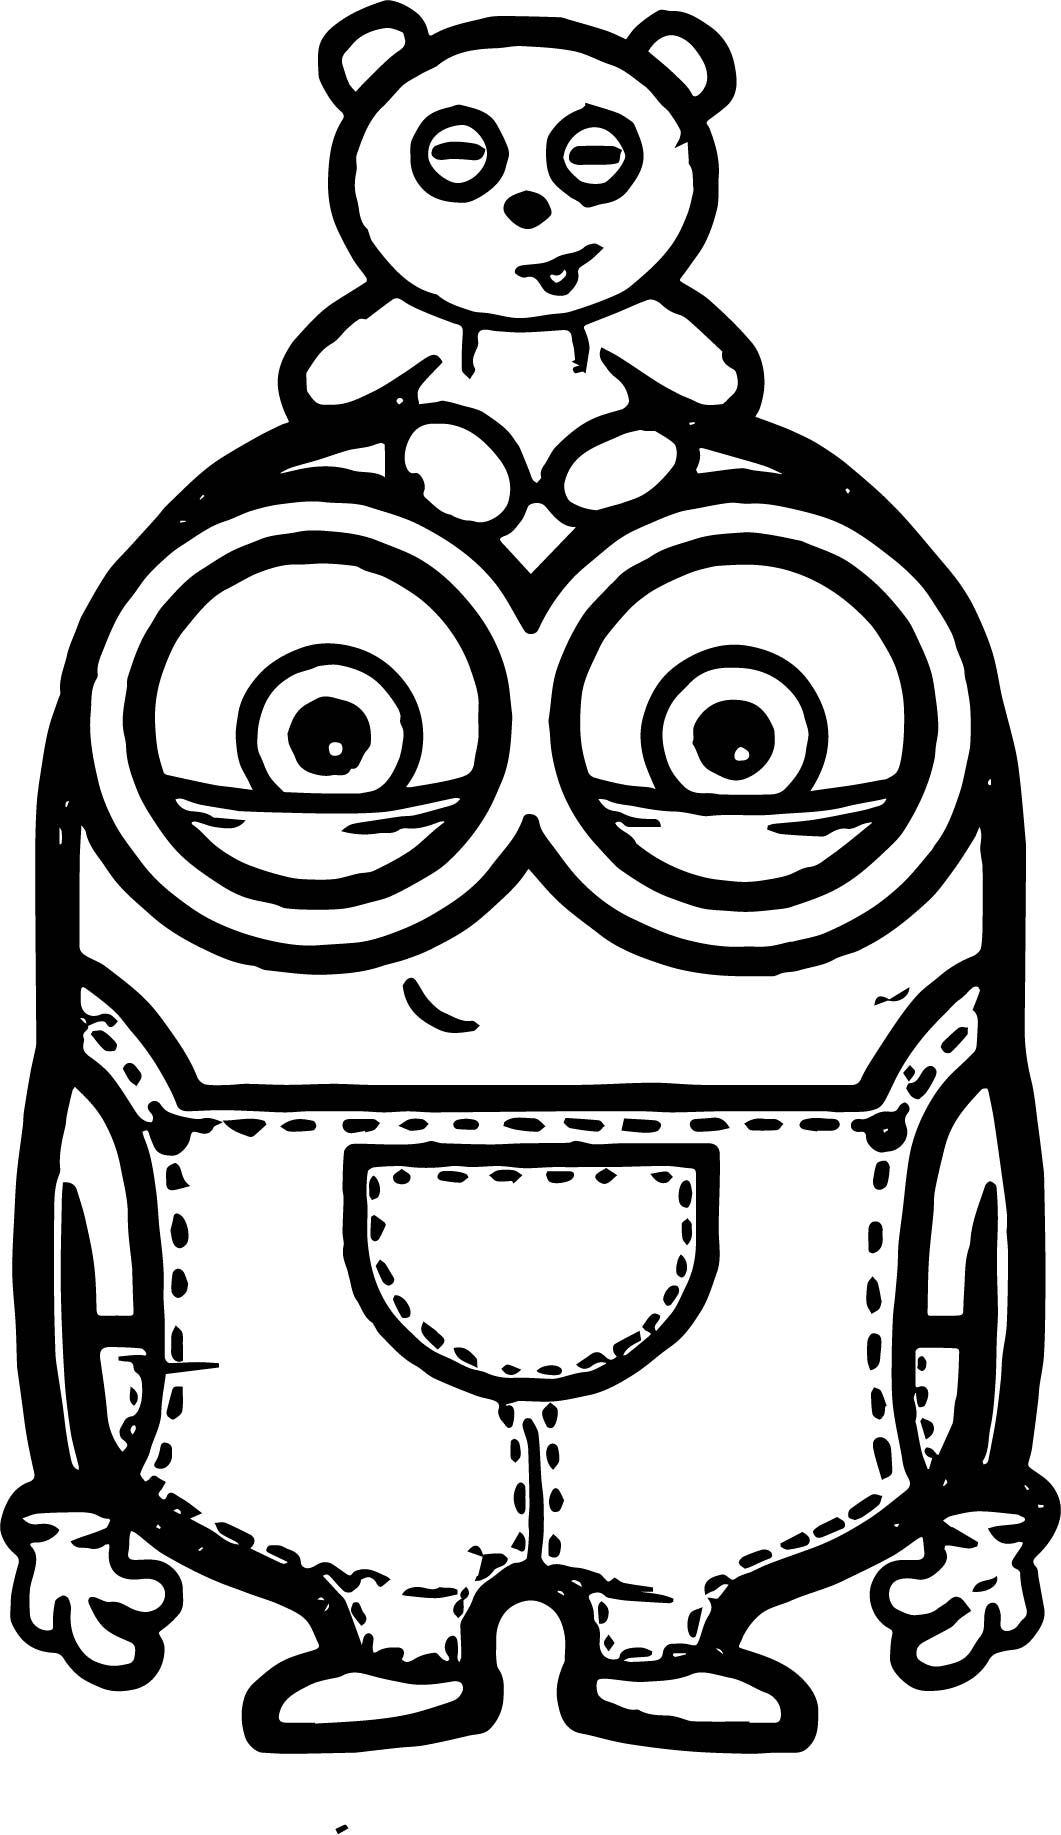 Awesome Minion Bob And Bear Toy Coloring Page Minion Coloring